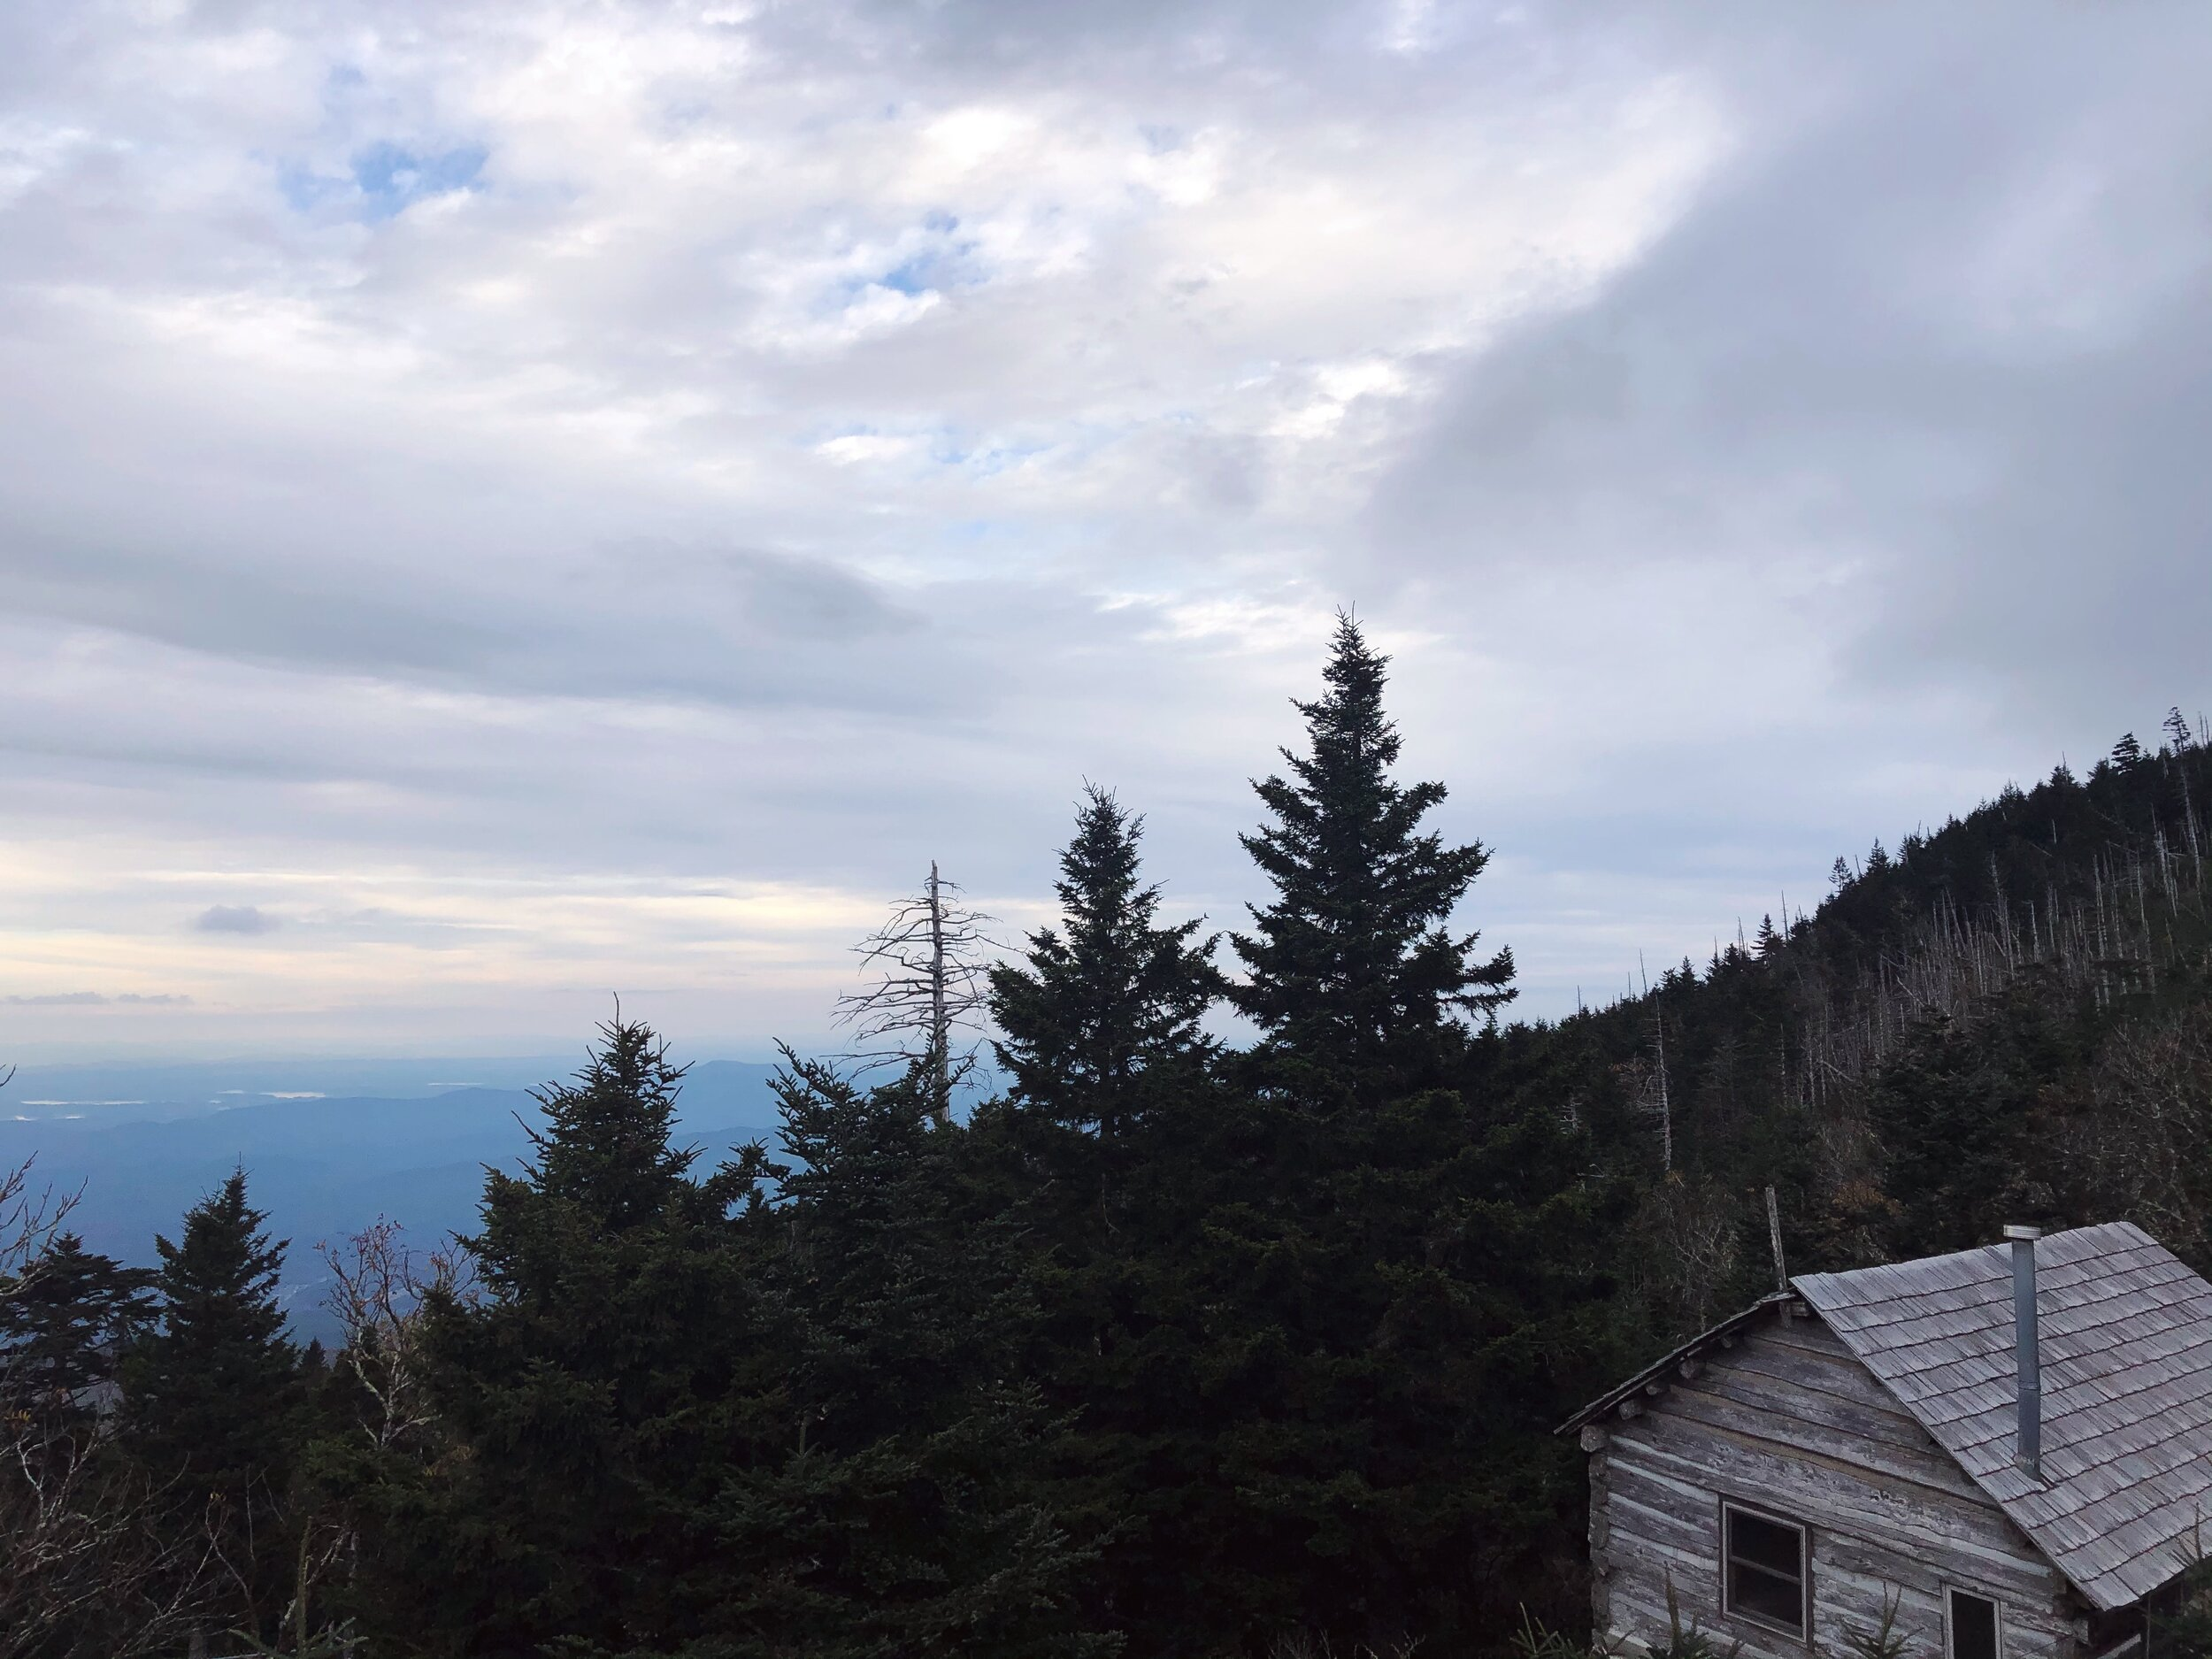 mount-leconte-lodge-great-smoky-mountains-gatlinberg-tennessee0452.JPG